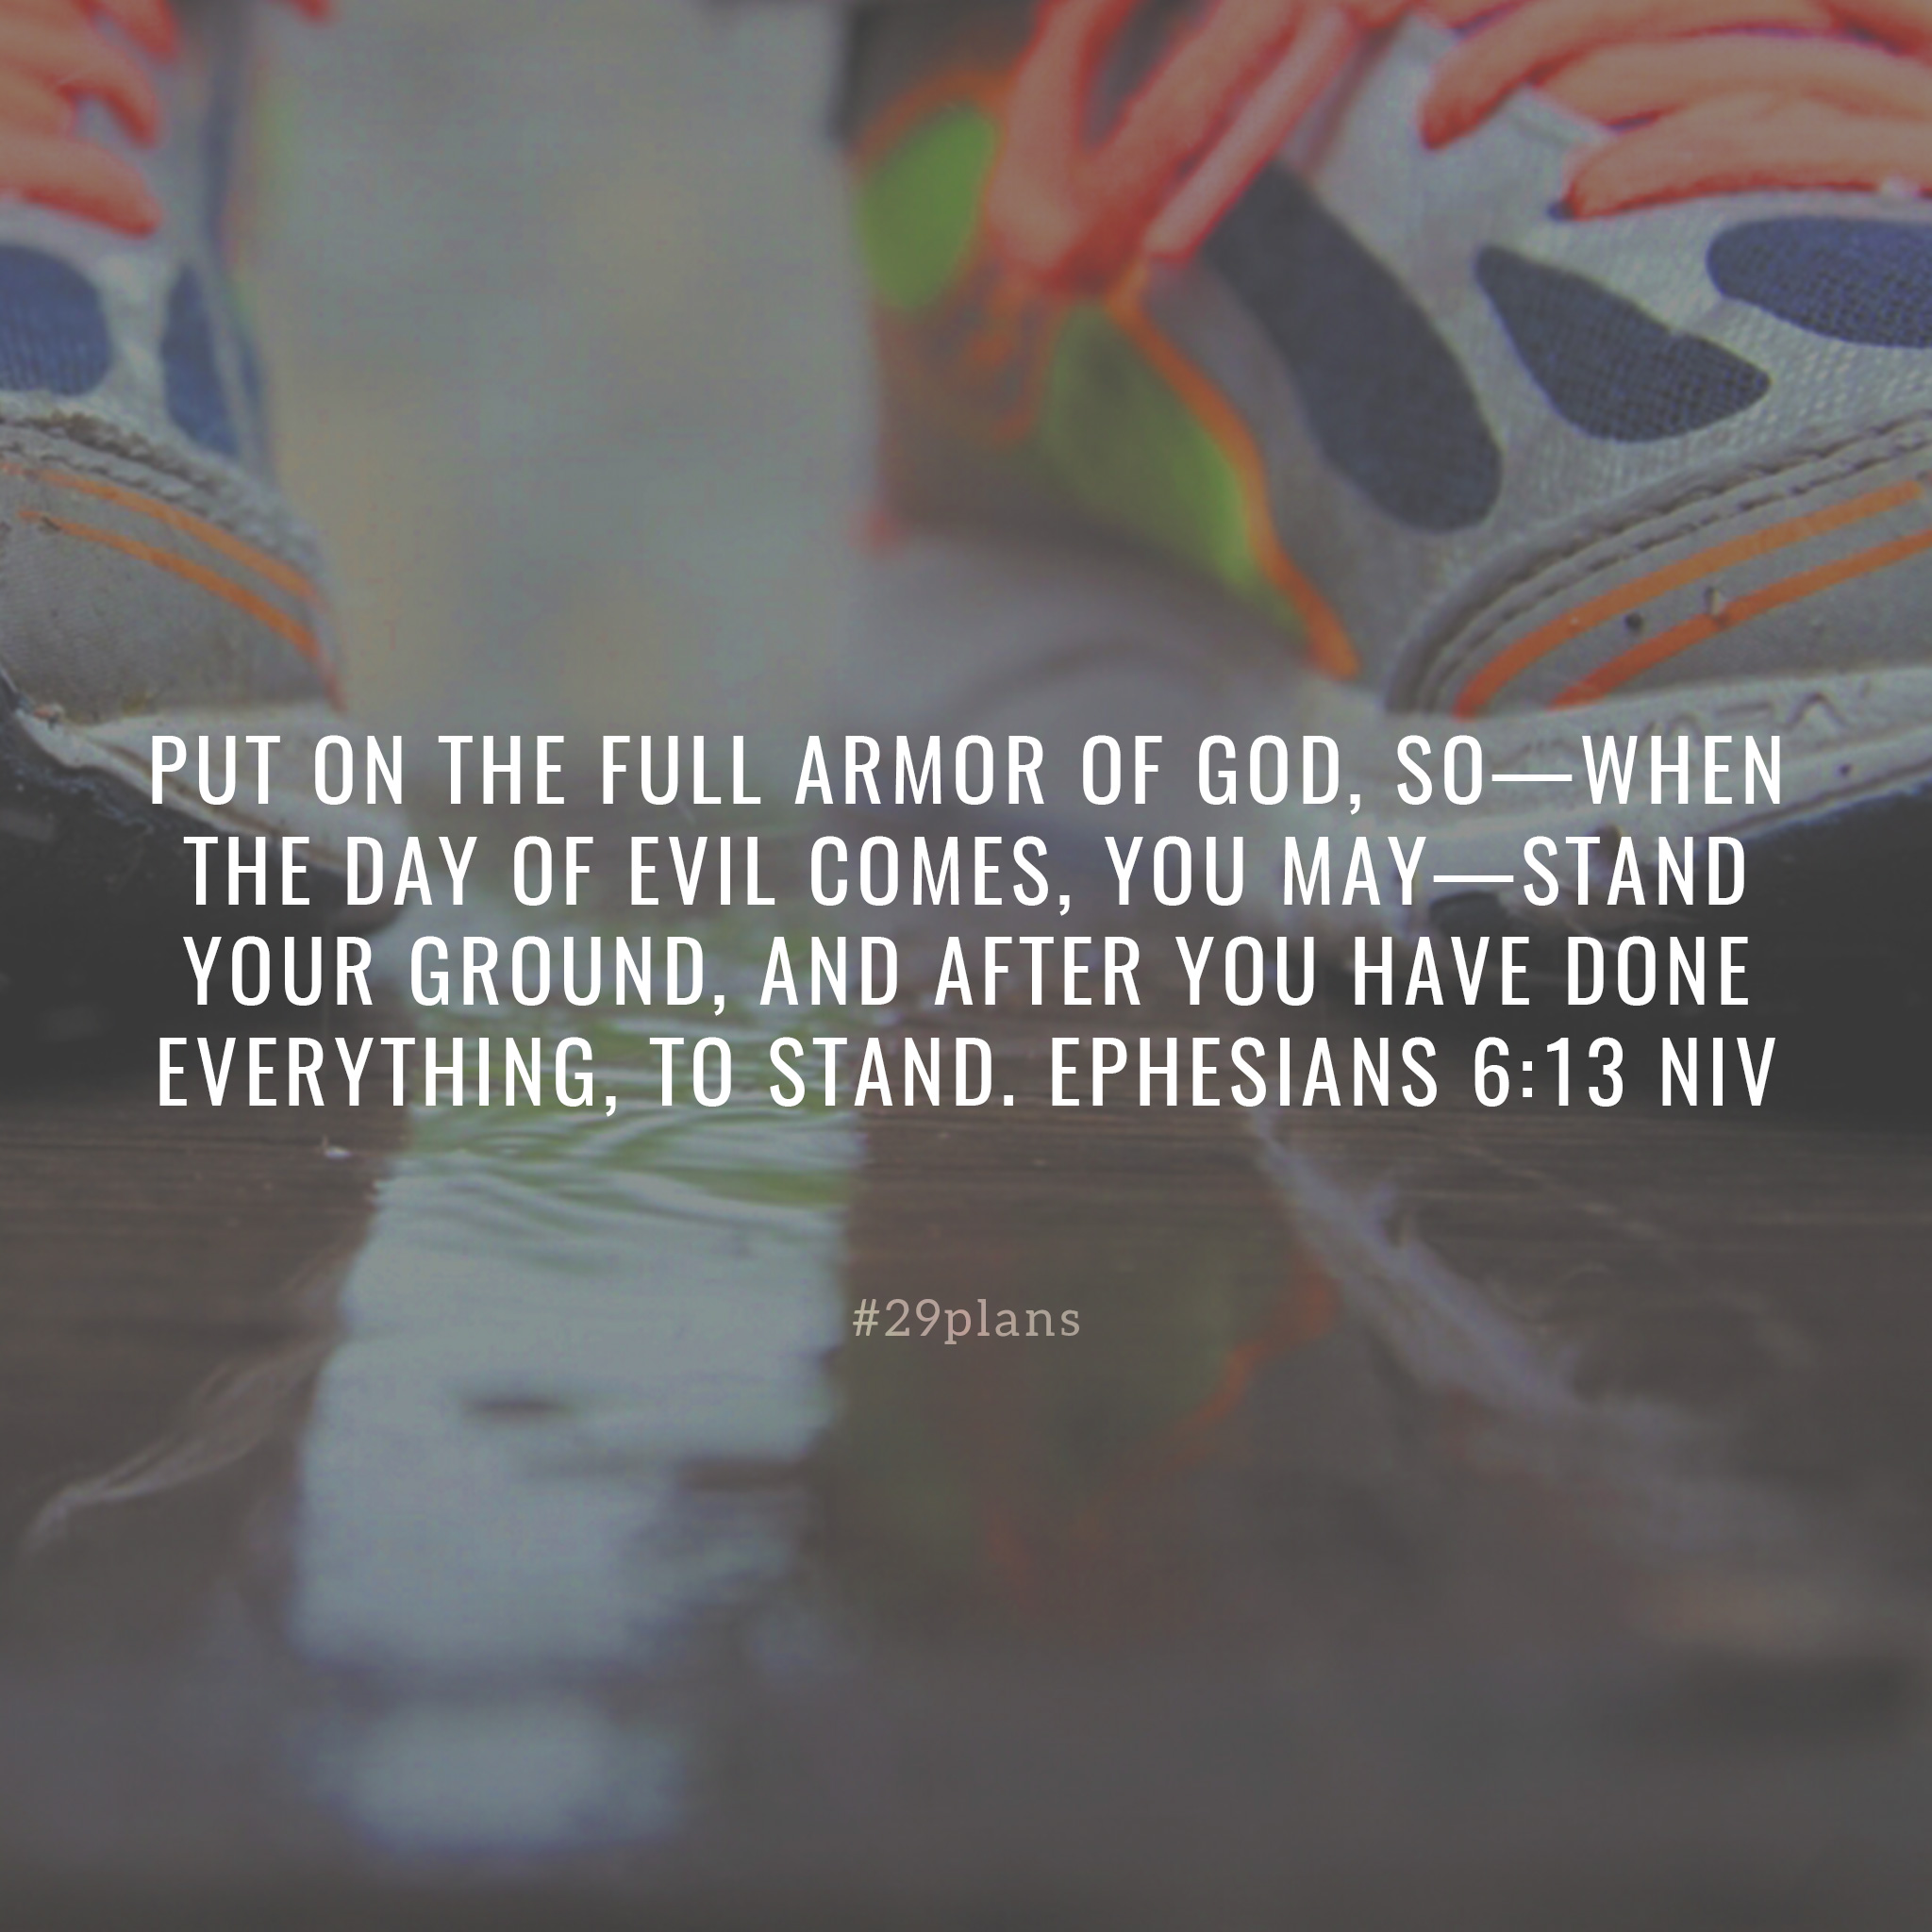 Today's Guide — 07.20.18 — Abigail and the Armor of God